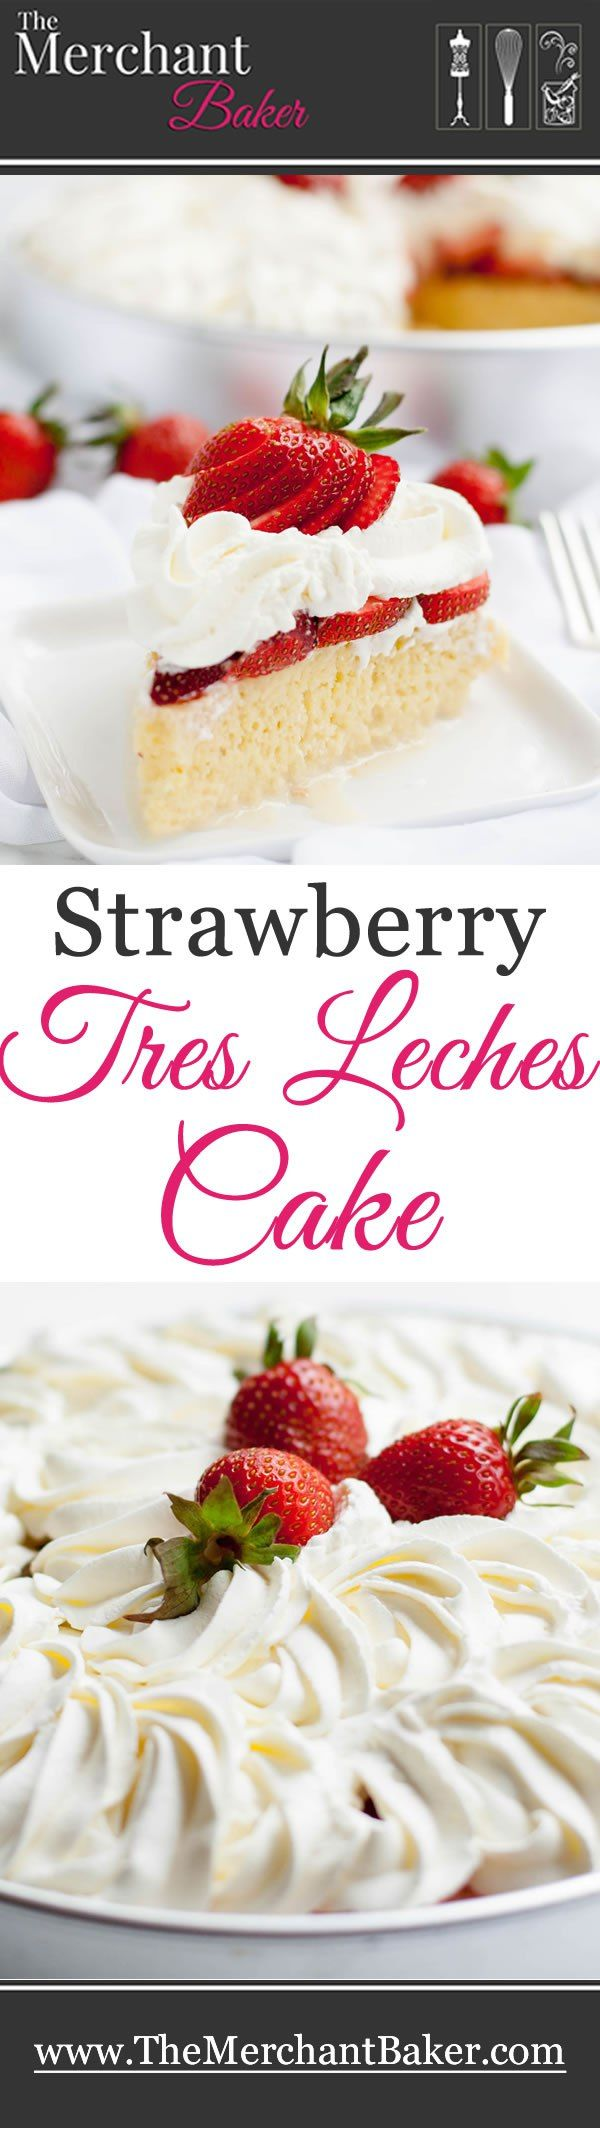 Strawberry Tres Leches Cake takes the classic combo of strawberries and cream to a new level. Berries are a perfect match for this rich and creamy cake!